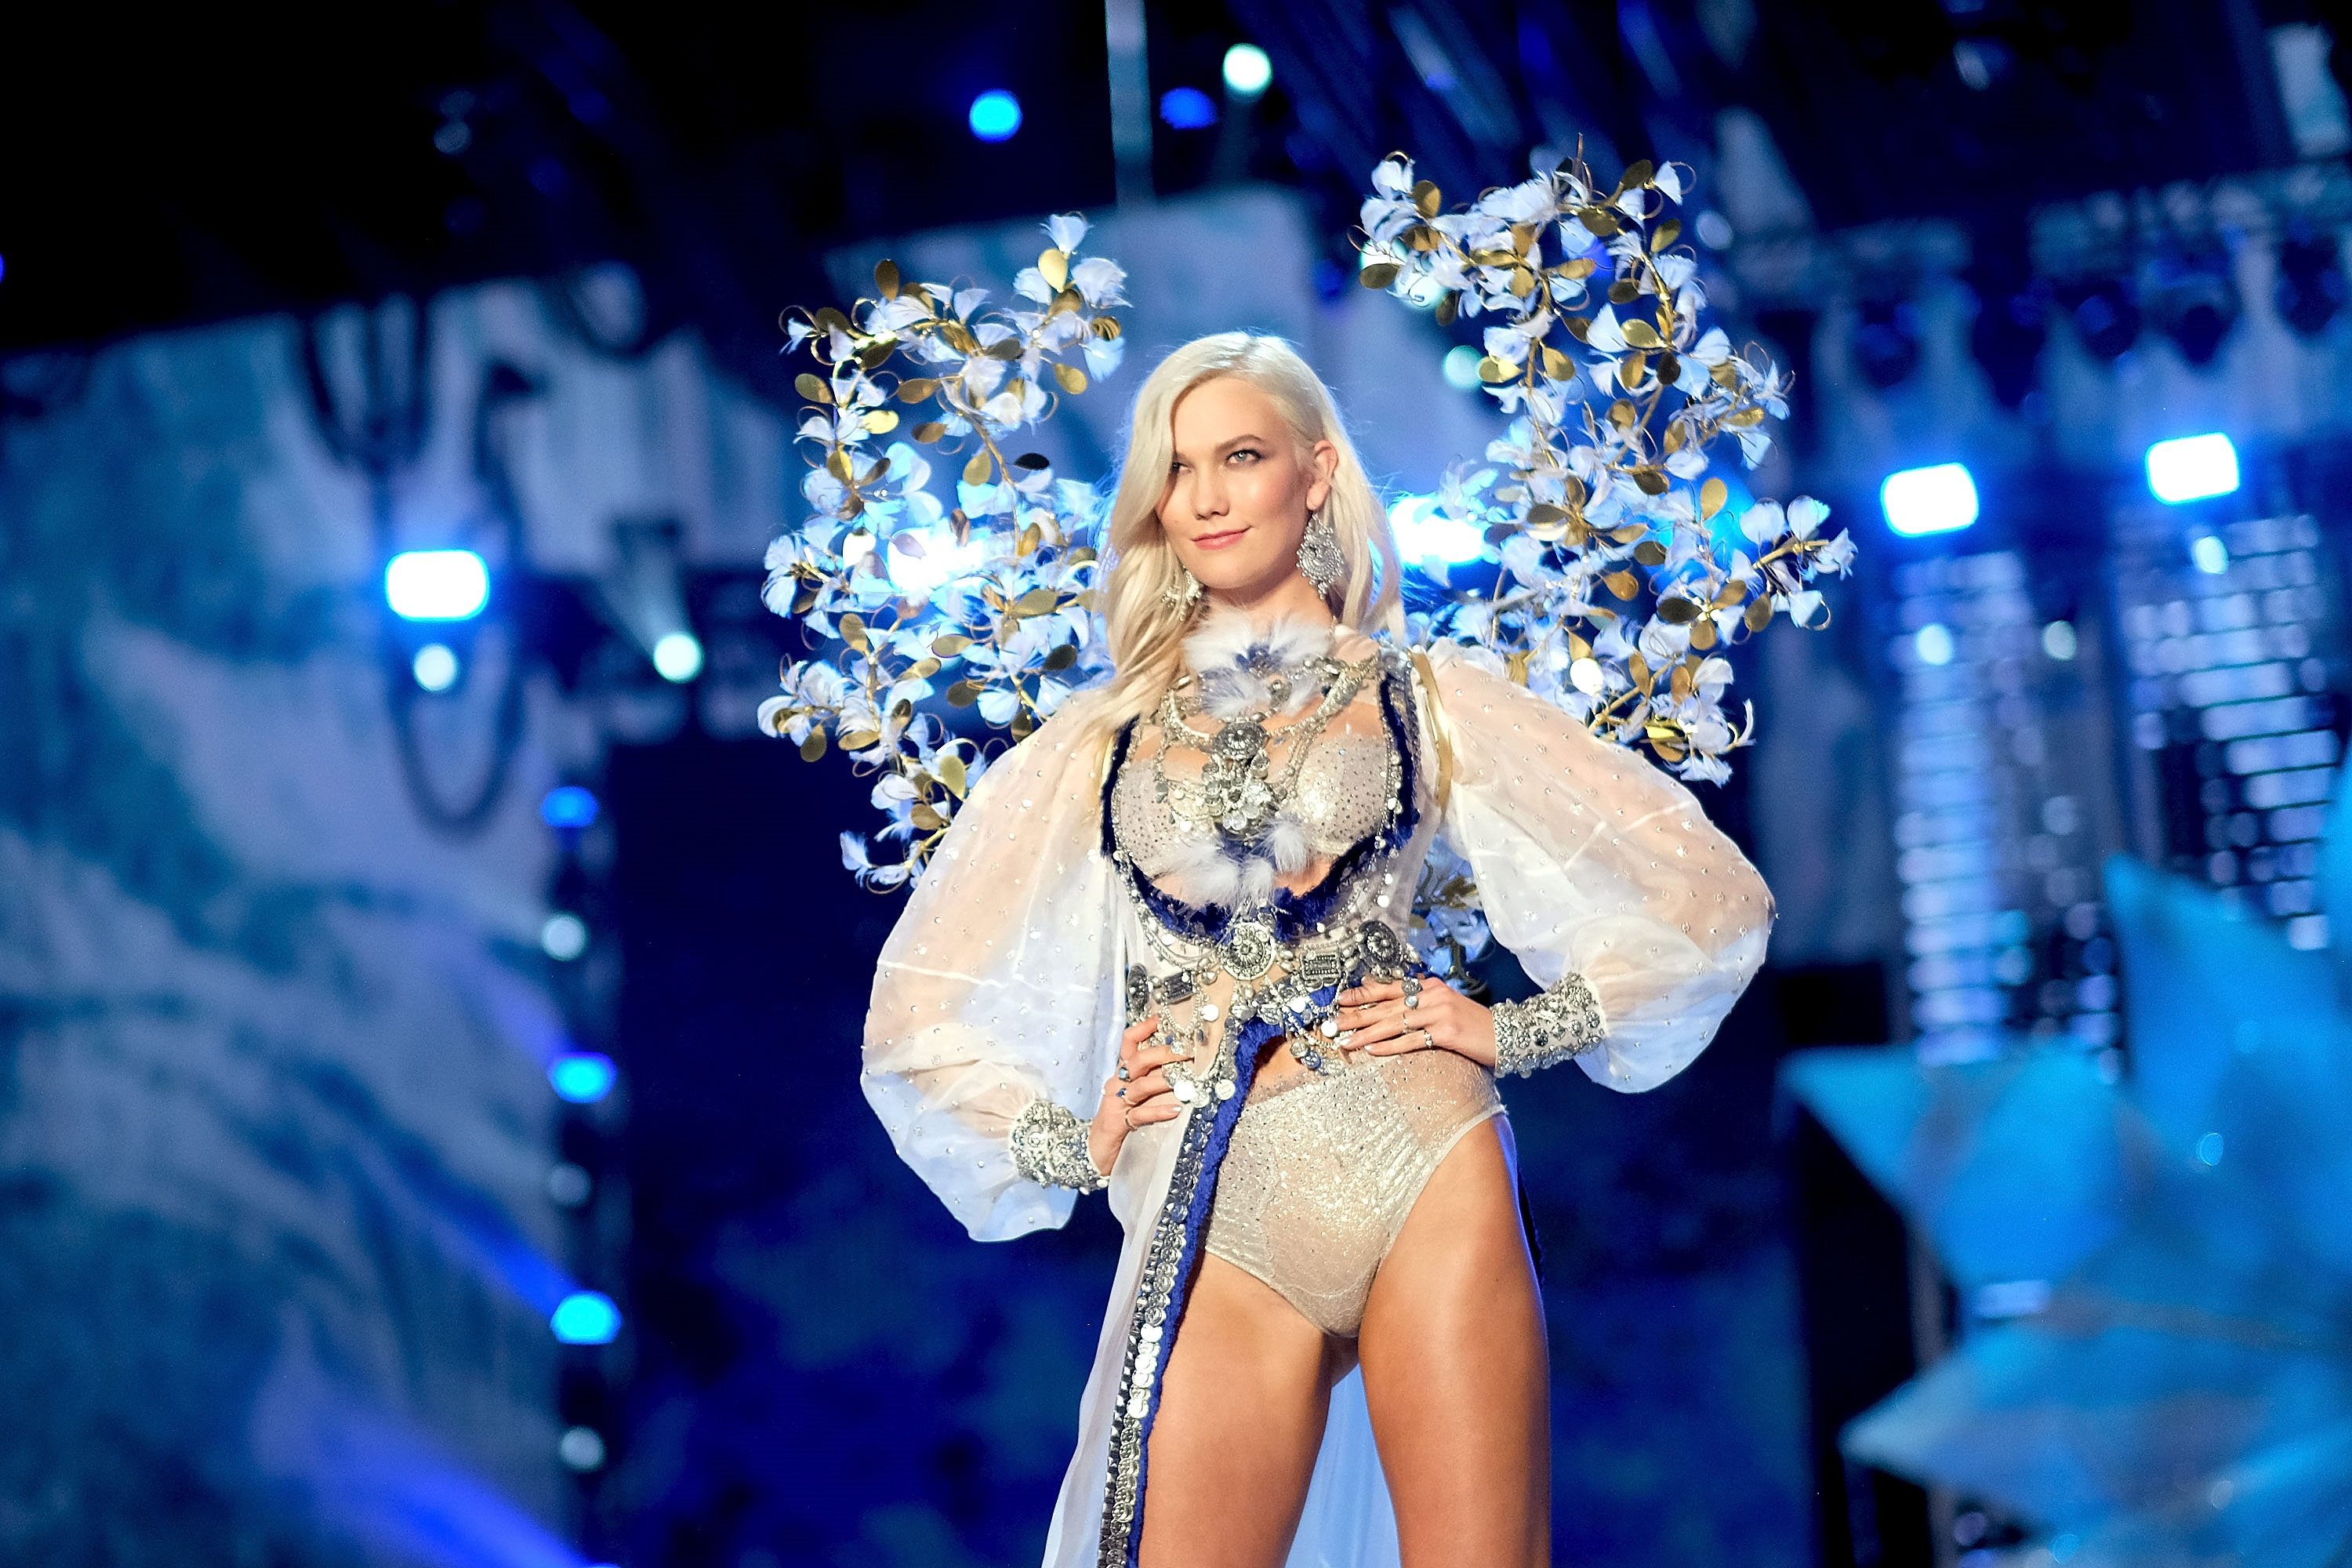 Victoria's Secret has officially canceled its annual fashion show amid backlash from models